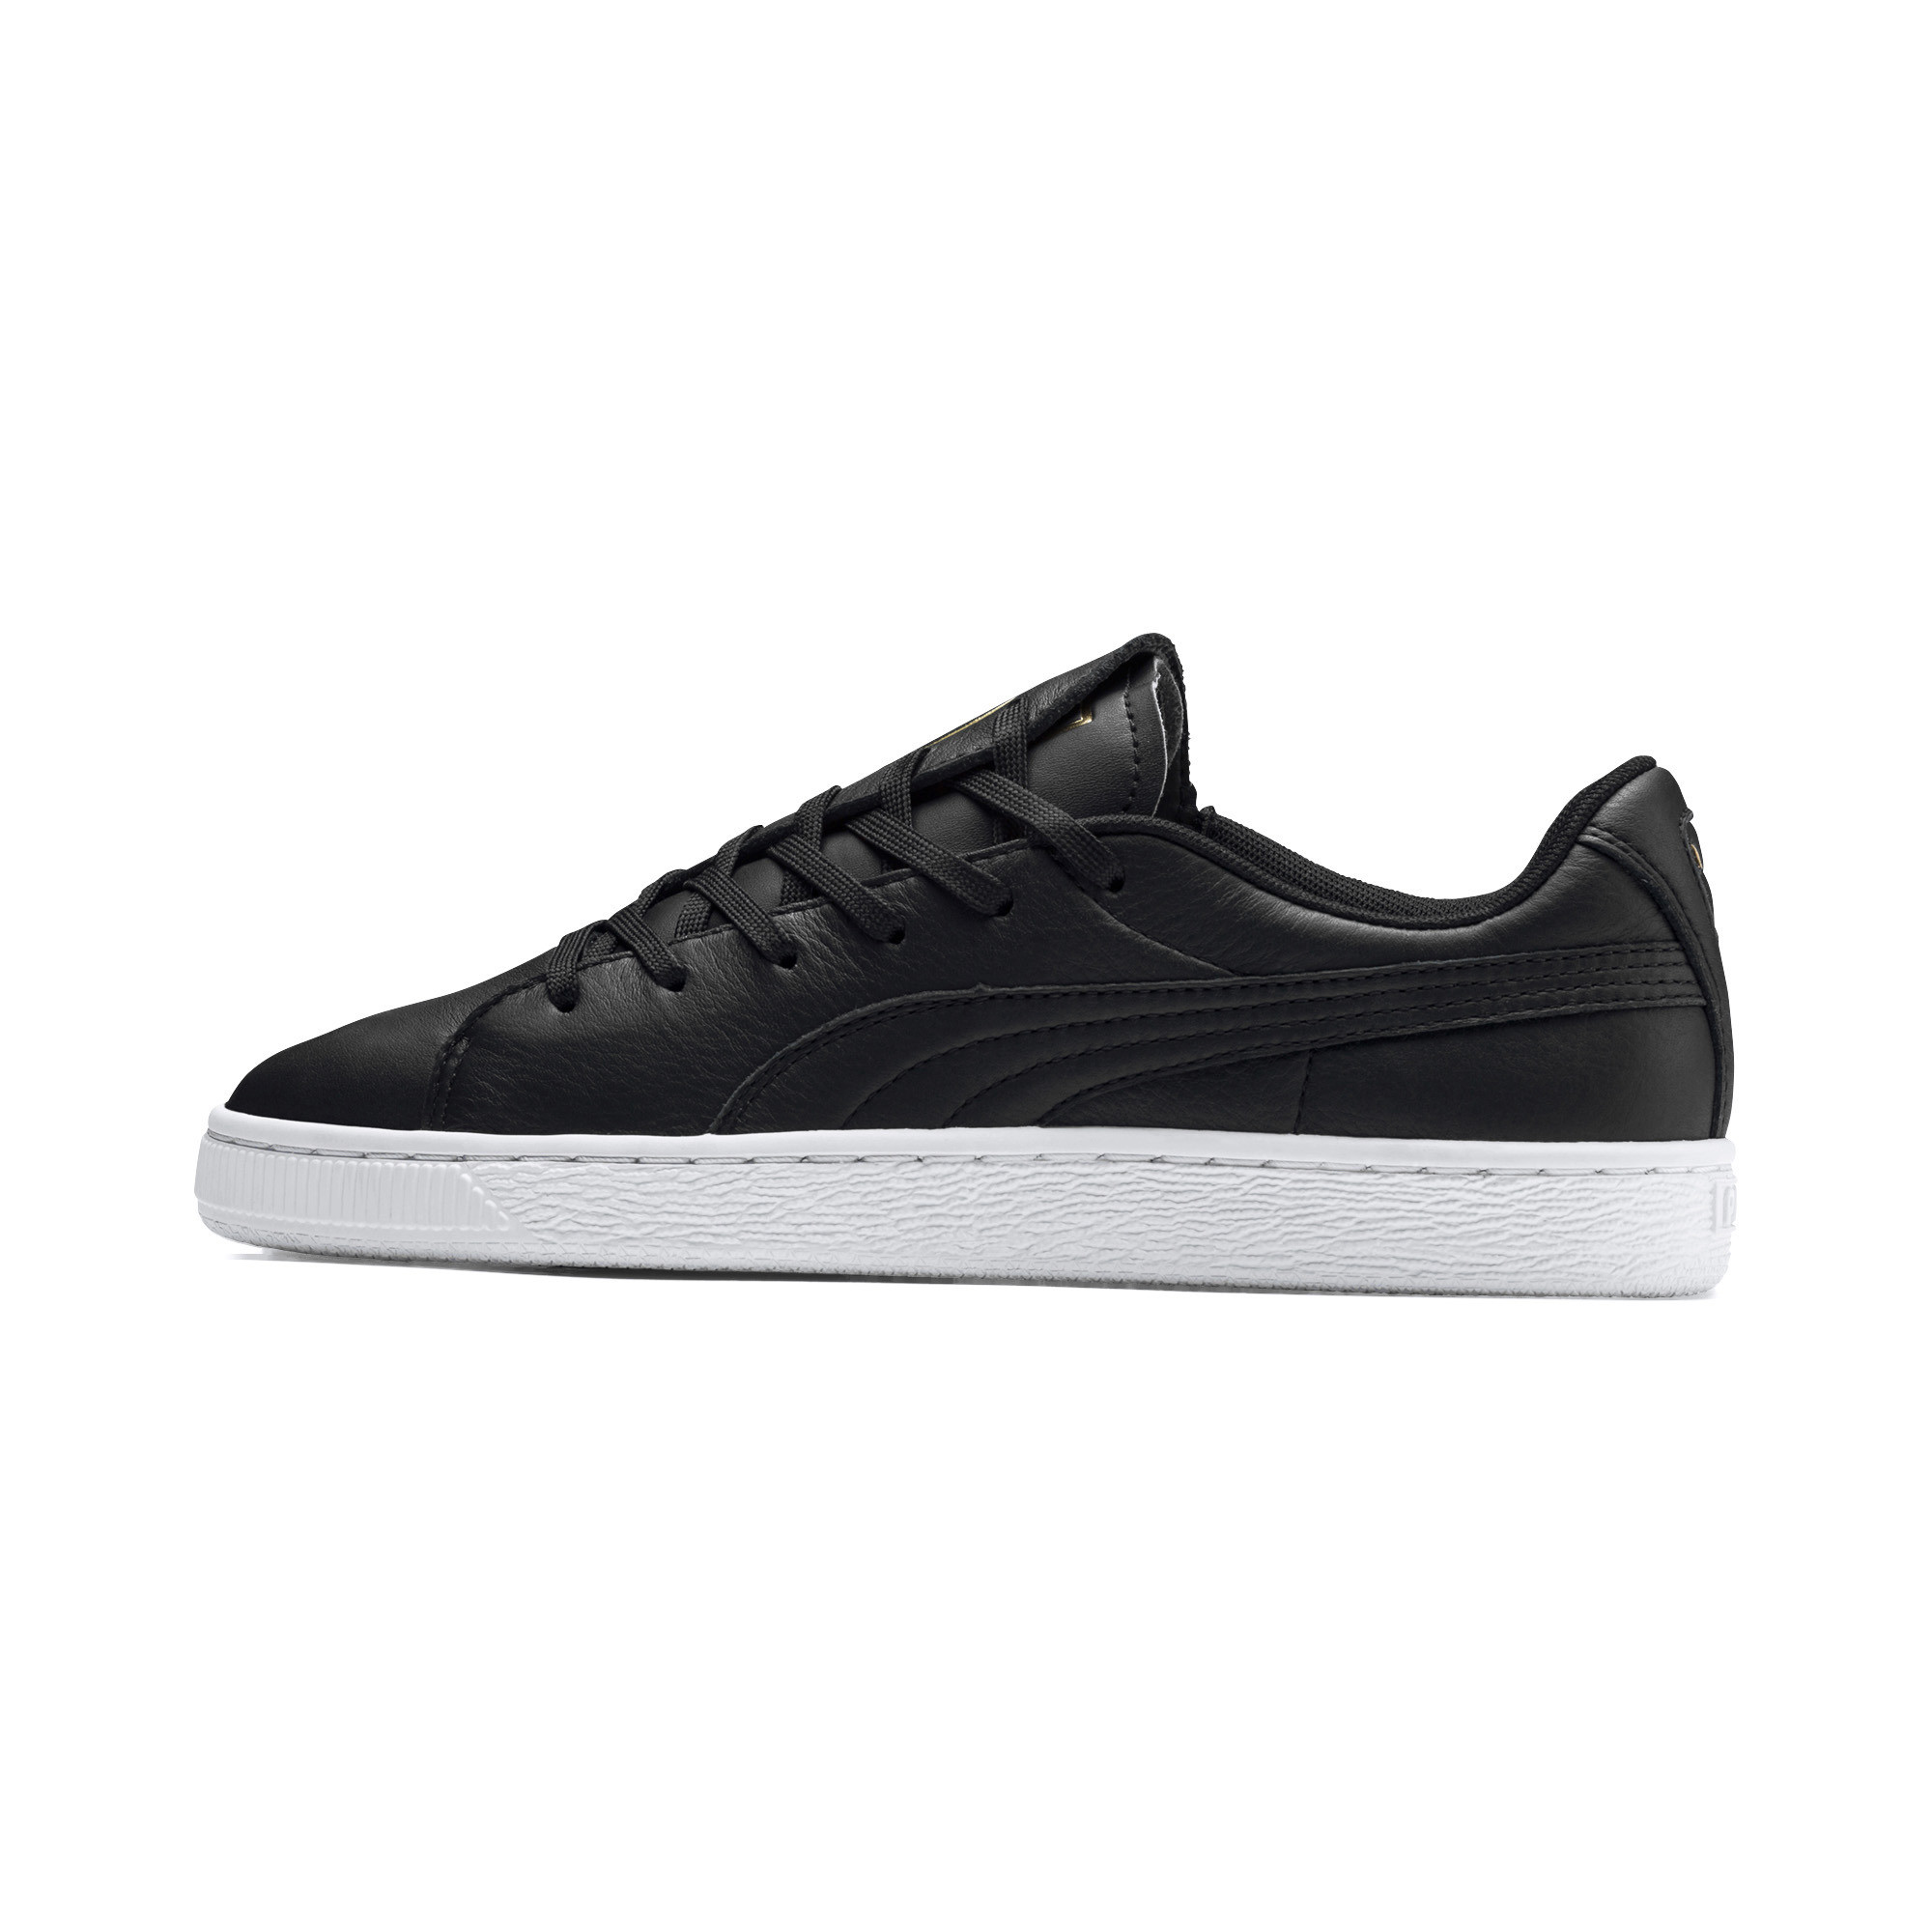 PUMA-Women-039-s-Basket-Crush-Emboss-Heart-Sneakers thumbnail 4